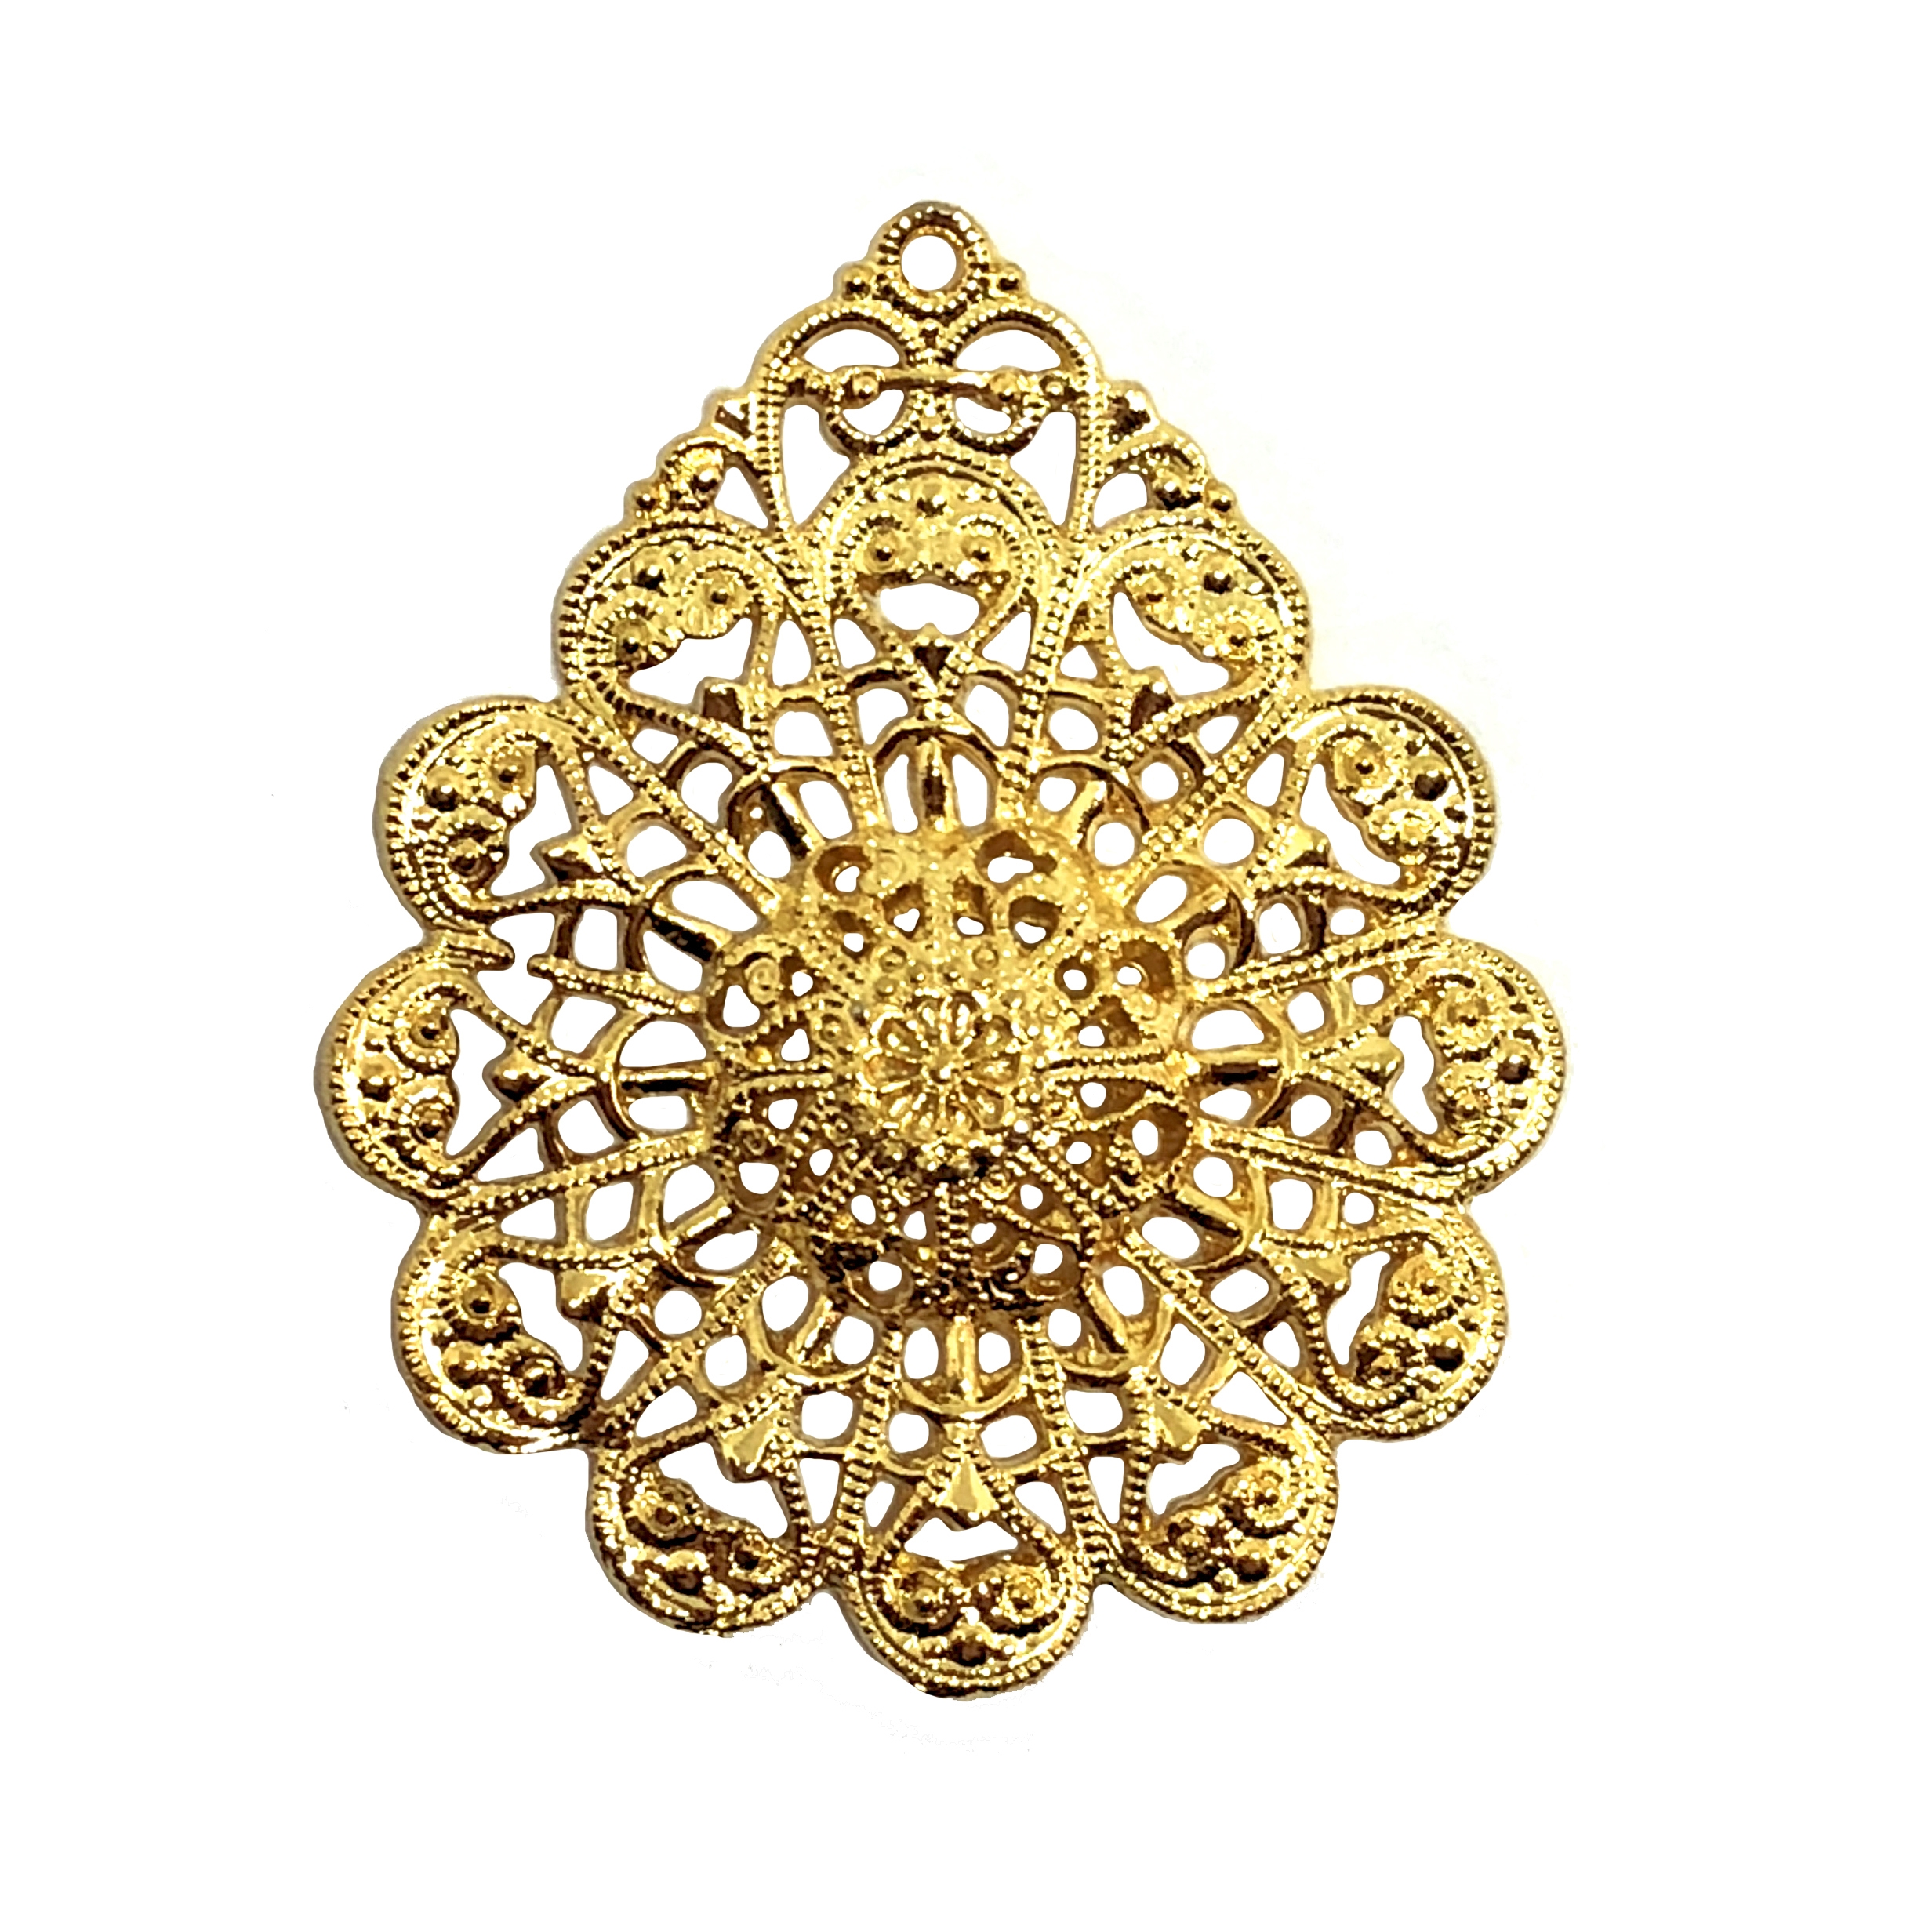 filigree flower pendant, 22K gold finish pewter, B'sue by 1928, jewelry pendant, pendant, filigree pendant, charm filigree, gold, lead free pewter, gold finish, US made, designer jewelry, vintage supplies, lacy edge, B'sue Boutiques, 38x32mm, 08516